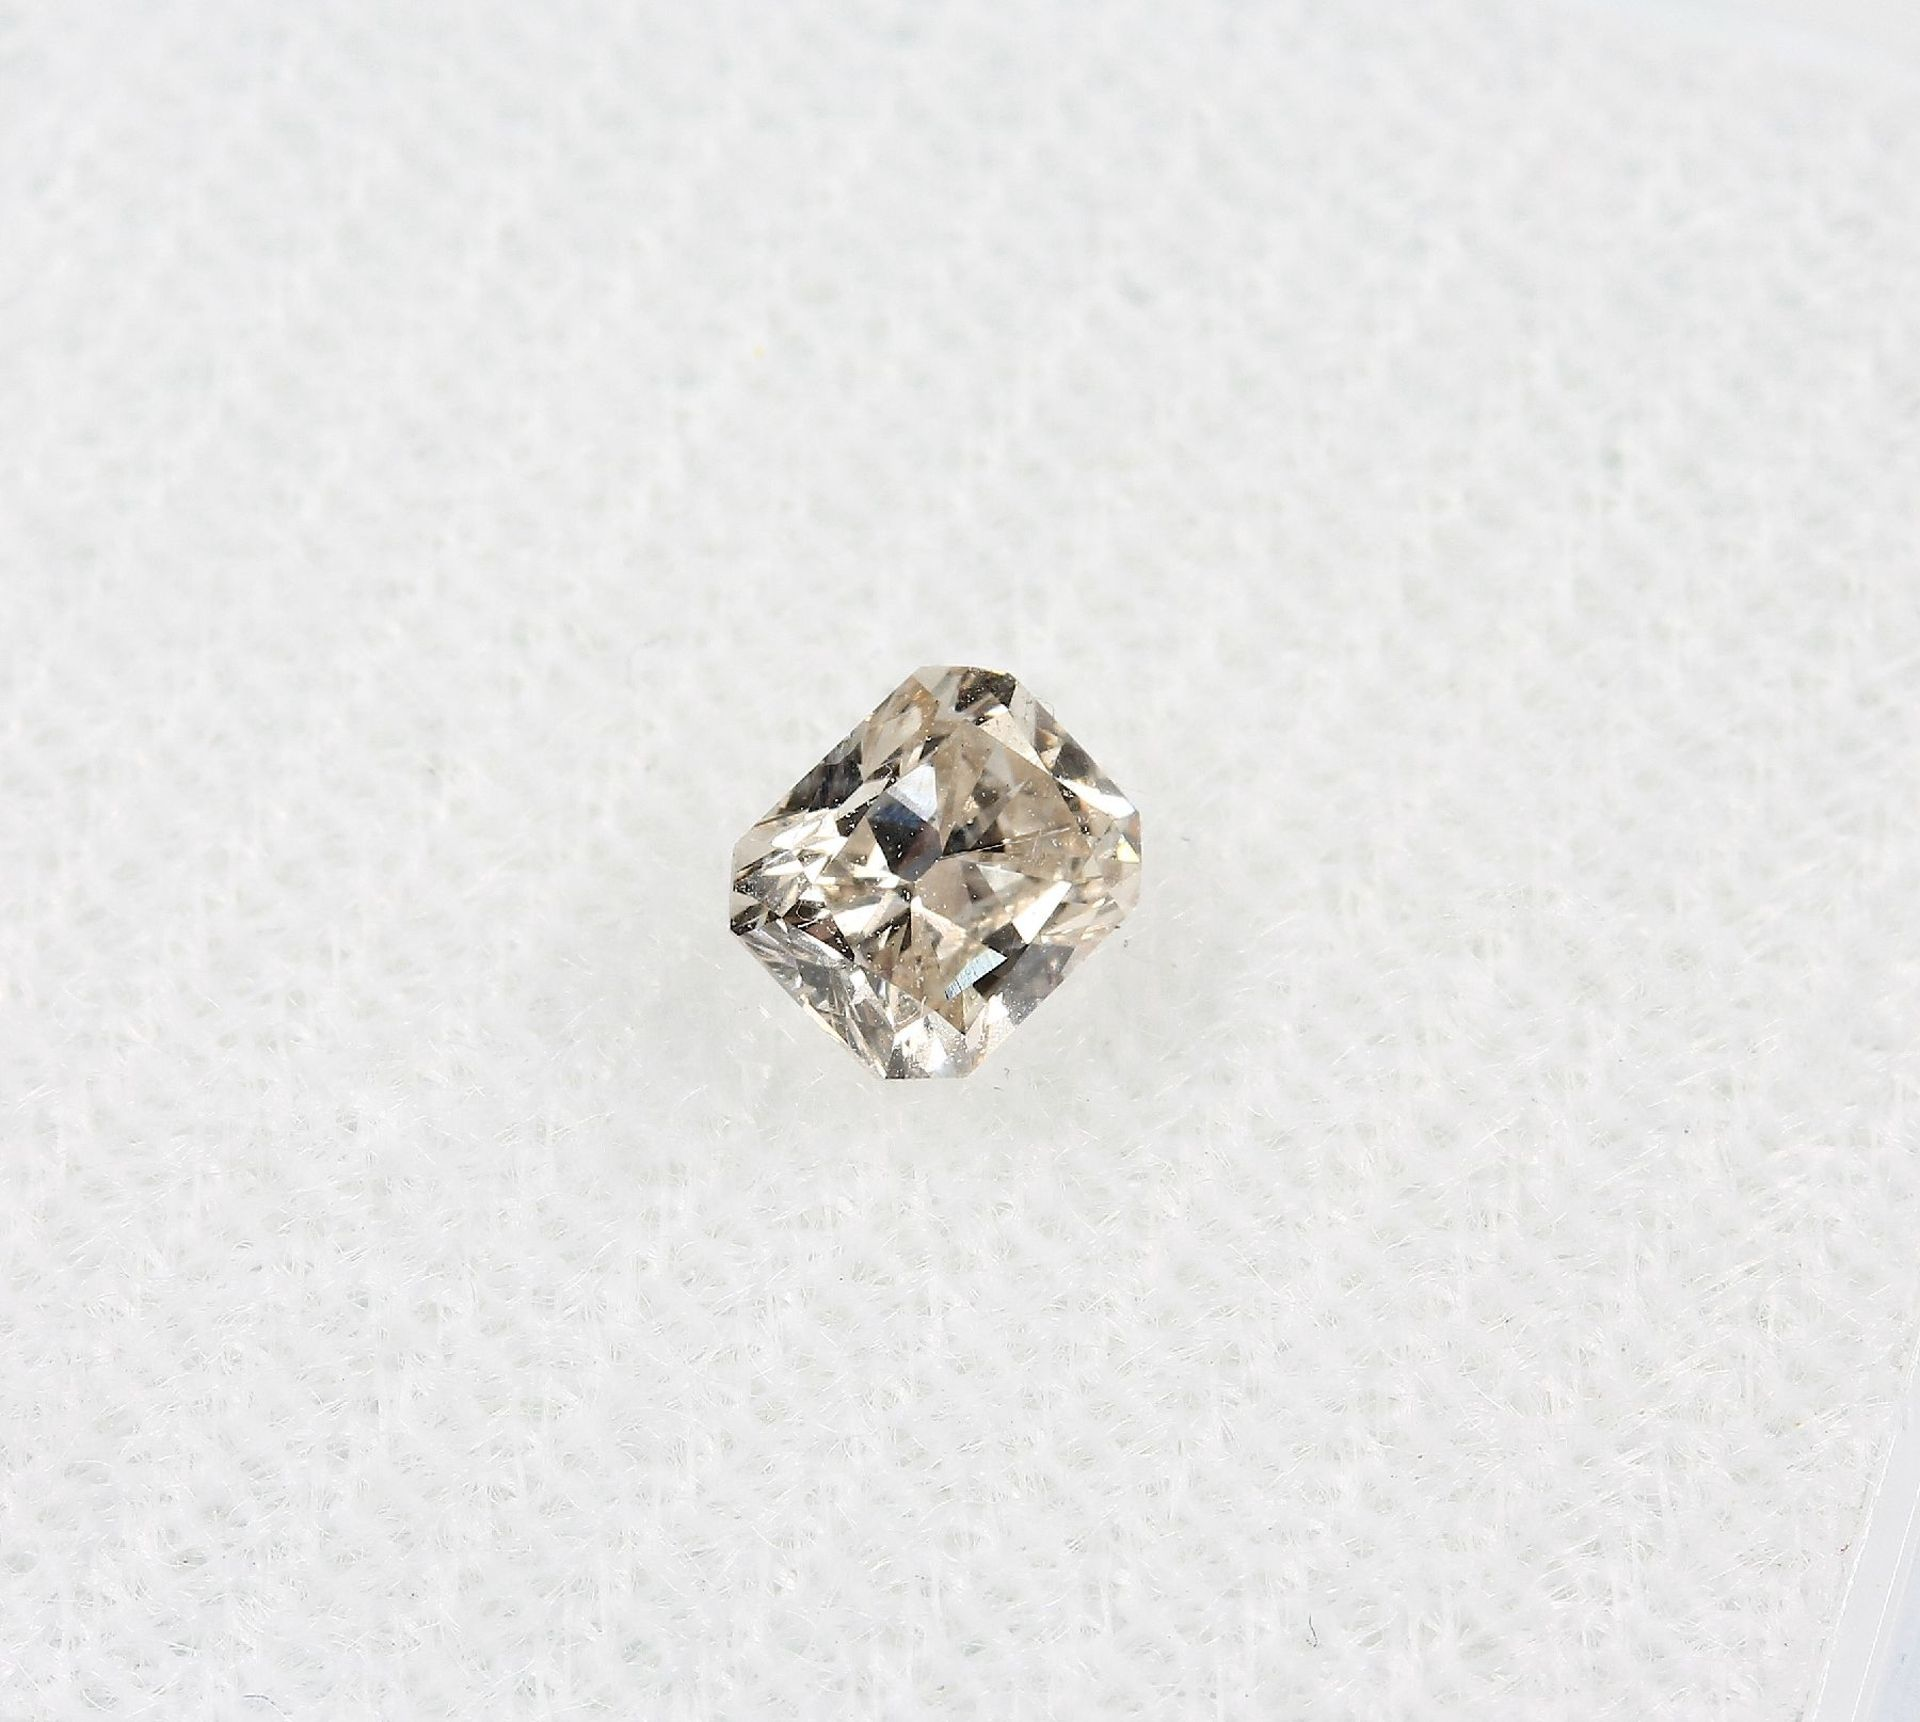 Los 70013 - Loser Diamantradiant, 0.40 ct get.(M)/si2, mit HRD-Expertise Schätzpreis: 810, - EURLoose diamond